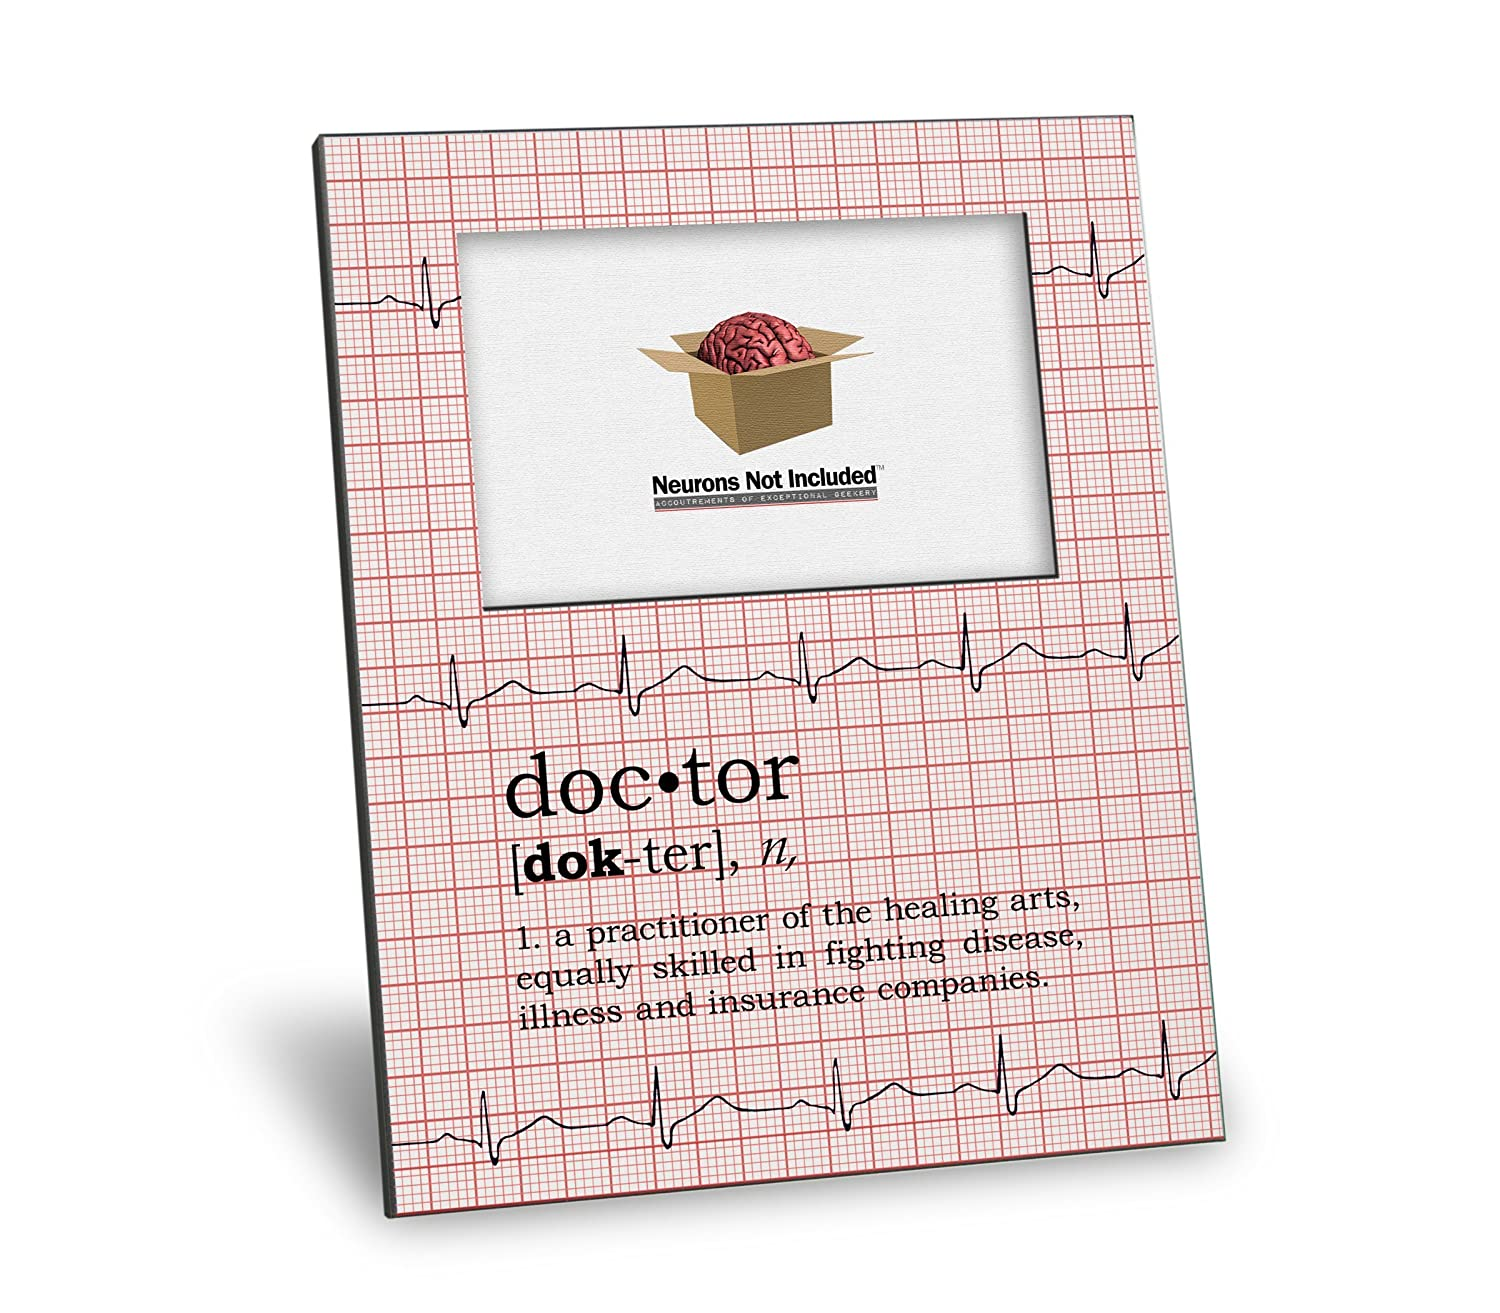 Doctor Definition Picture Frame - Personalization Available - 8x10 Frame - 4x6 Picture - Gloss White Finish